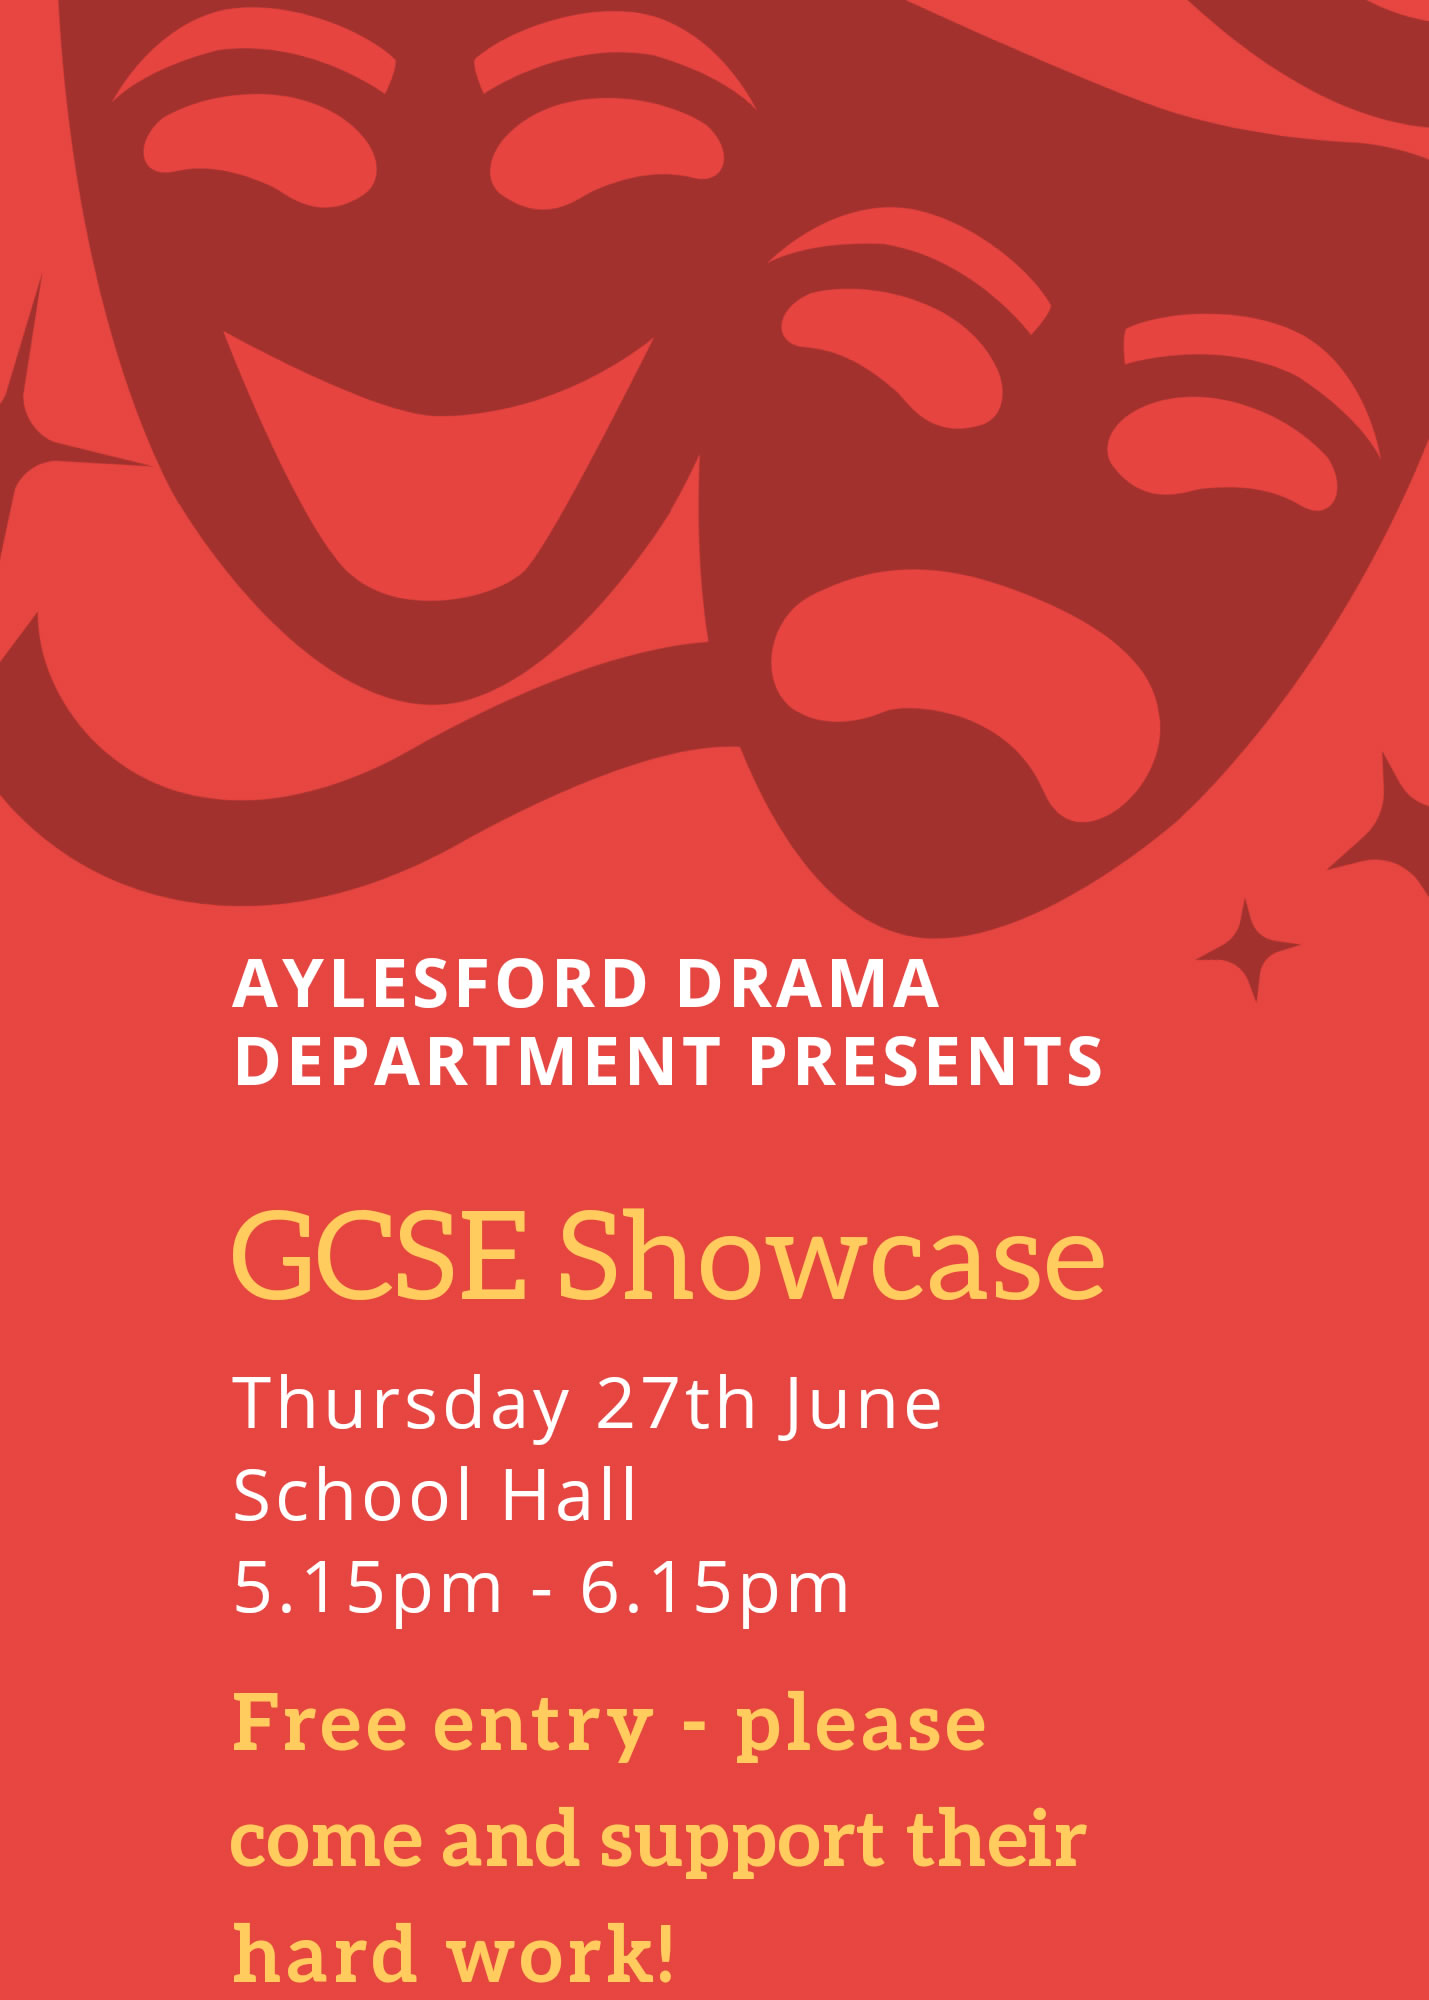 GCSE Drama Showcase - Thursday 27th June